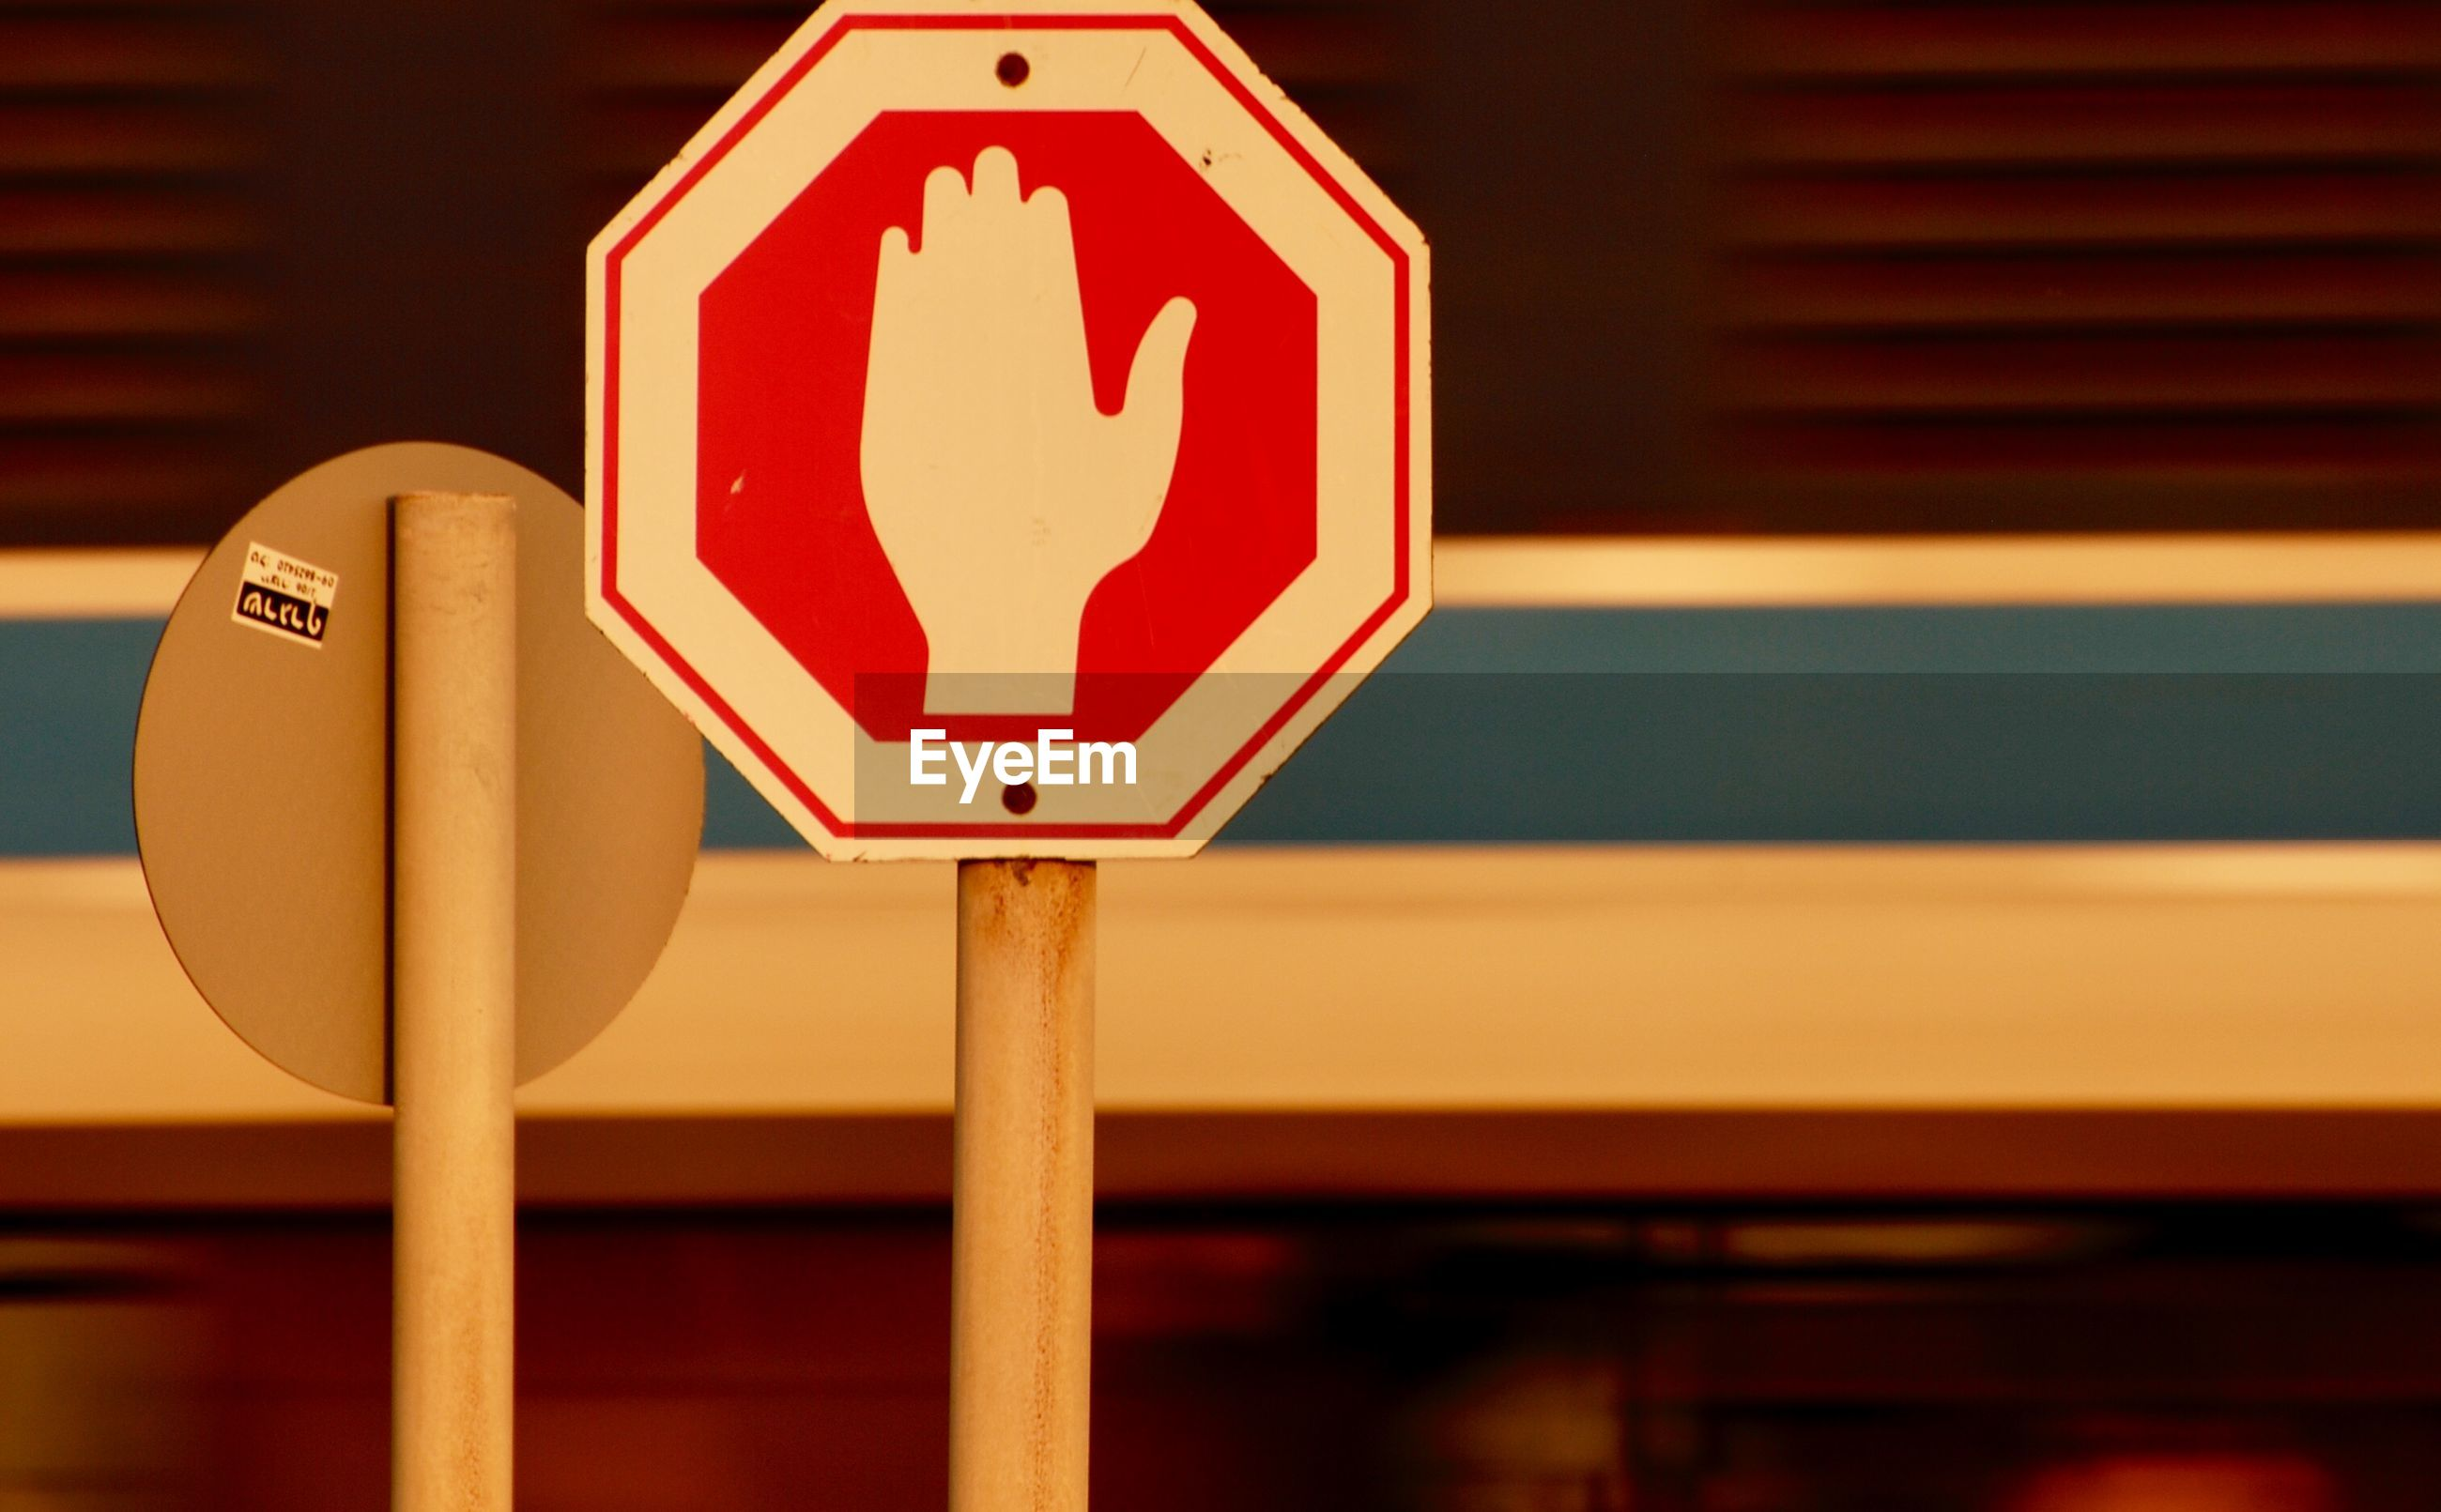 CLOSE-UP OF ARROW SIGN ON ROAD AGAINST BLURRED BACKGROUND